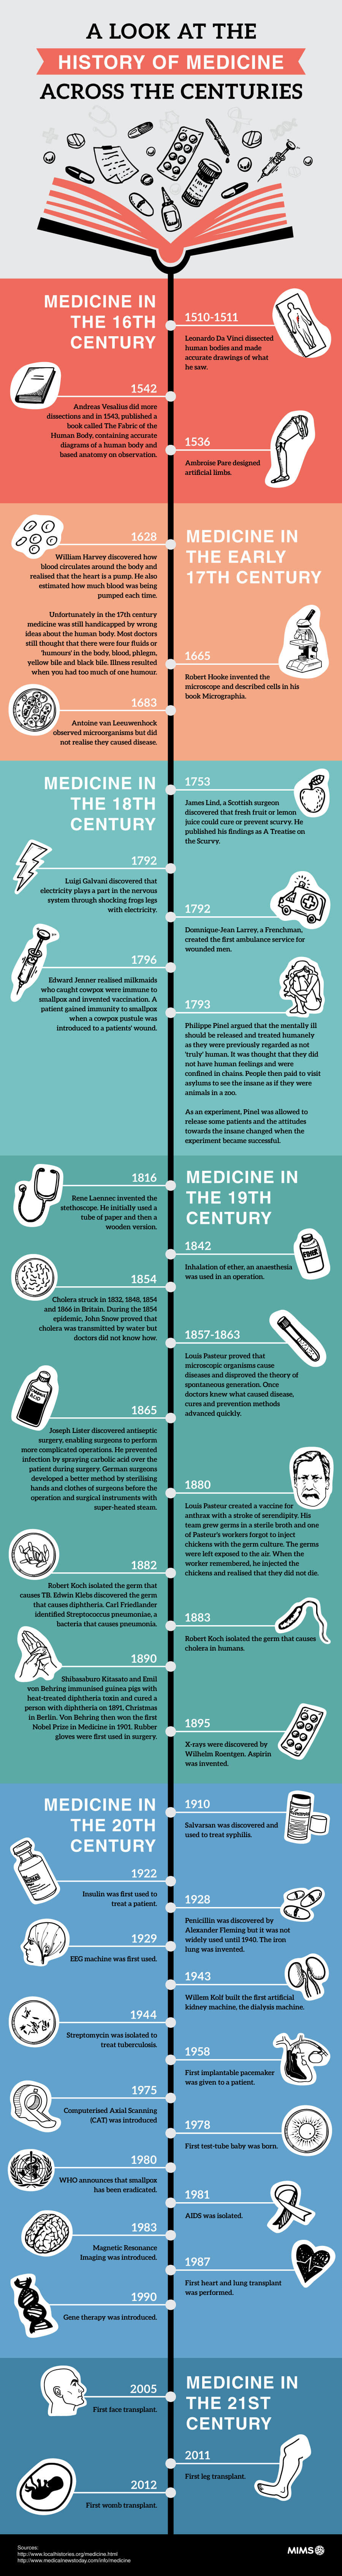 A brief history of medicine across the centuries